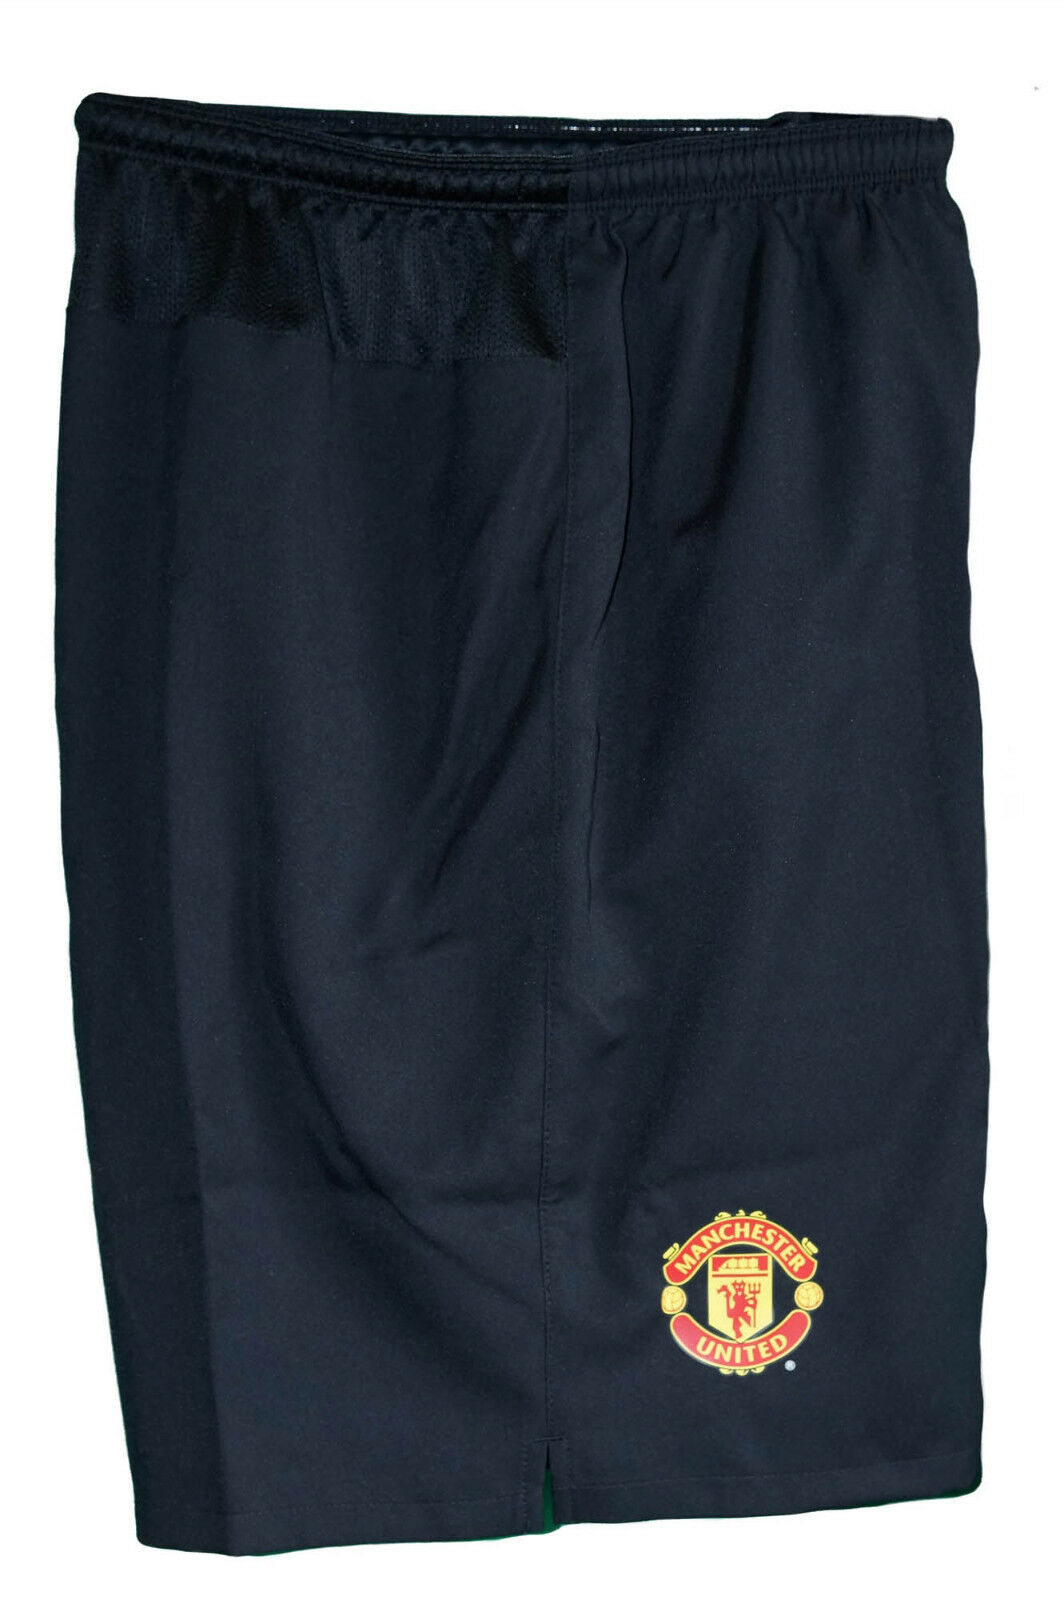 NUOVO Nike Manchester United Football Shorts Player Issue Nero XL